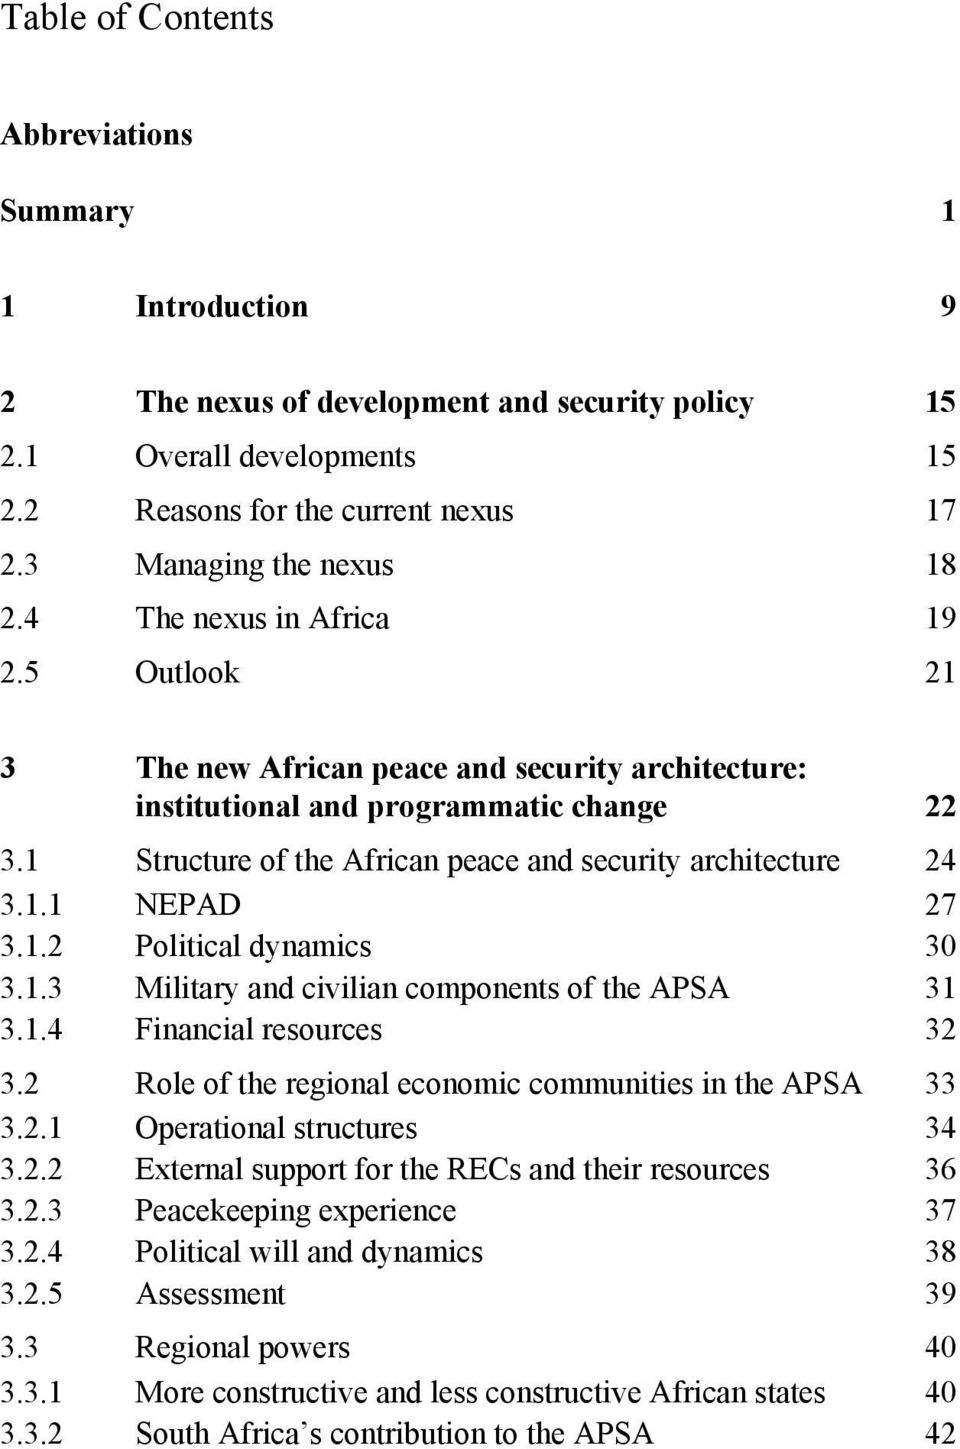 1 Structure of the African peace and security architecture 24 3.1.1 NEPAD 27 3.1.2 Political dynamics 30 3.1.3 Military and civilian components of the APSA 31 3.1.4 Financial resources 32 3.